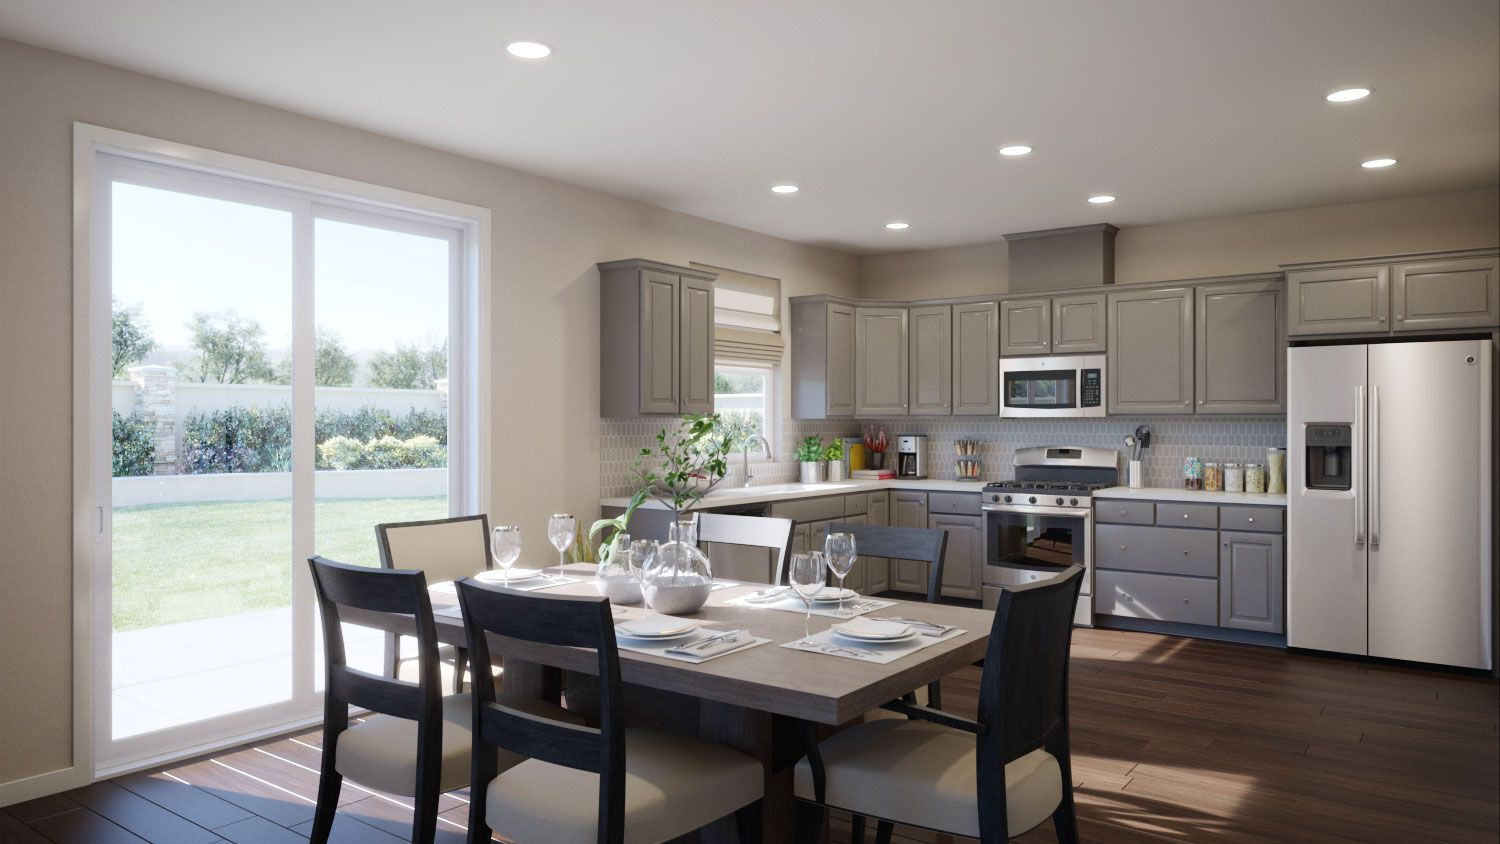 Kitchen-in-Residence 1-at-Lantana at the Villages-in-Fairfield